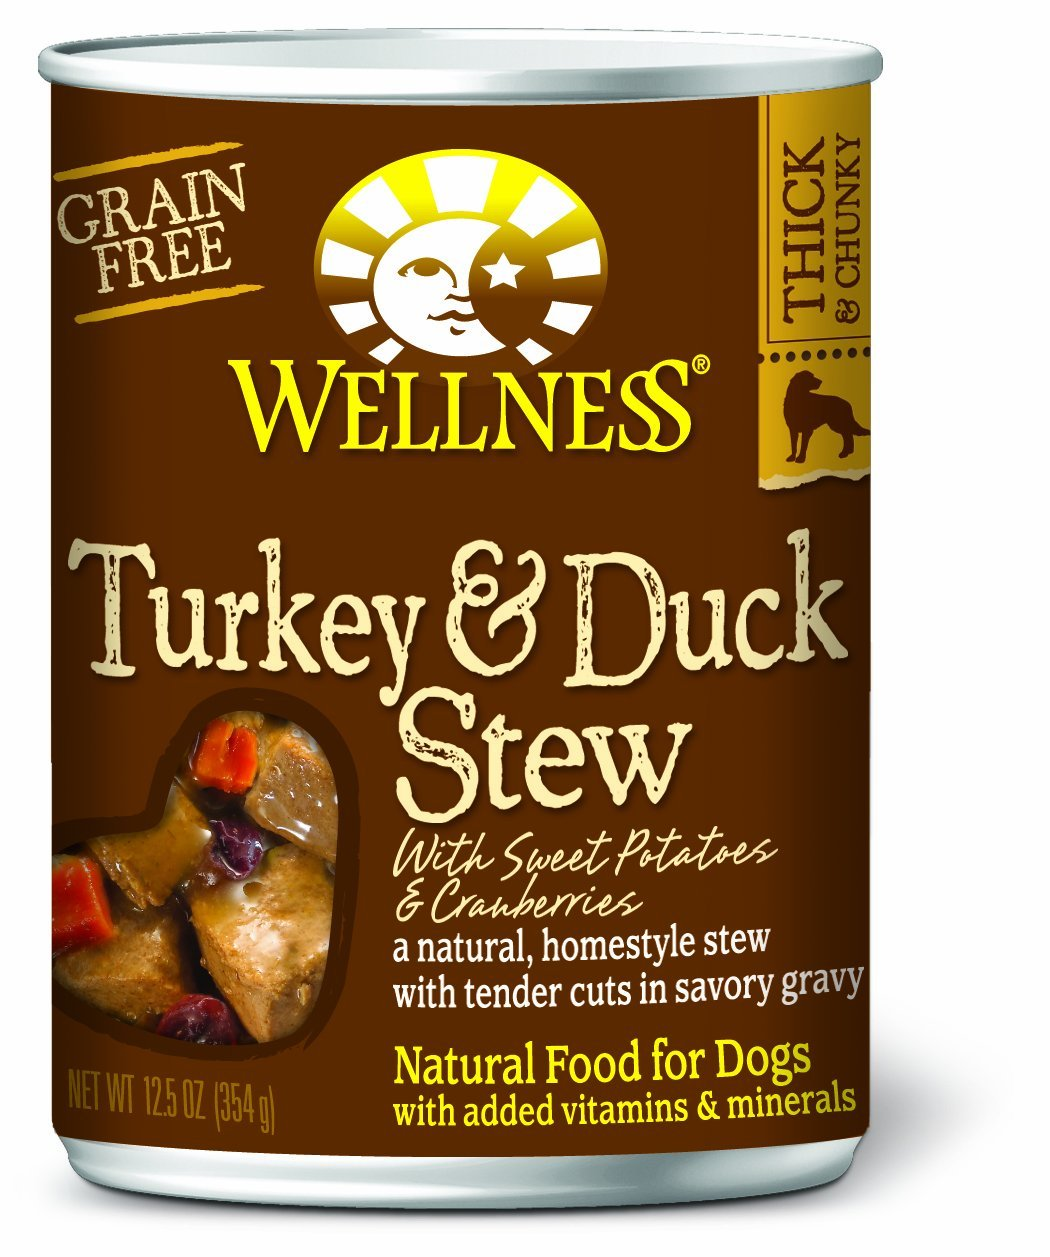 Turkey & Duck Stew with Sweet Potatoes & Cranberries